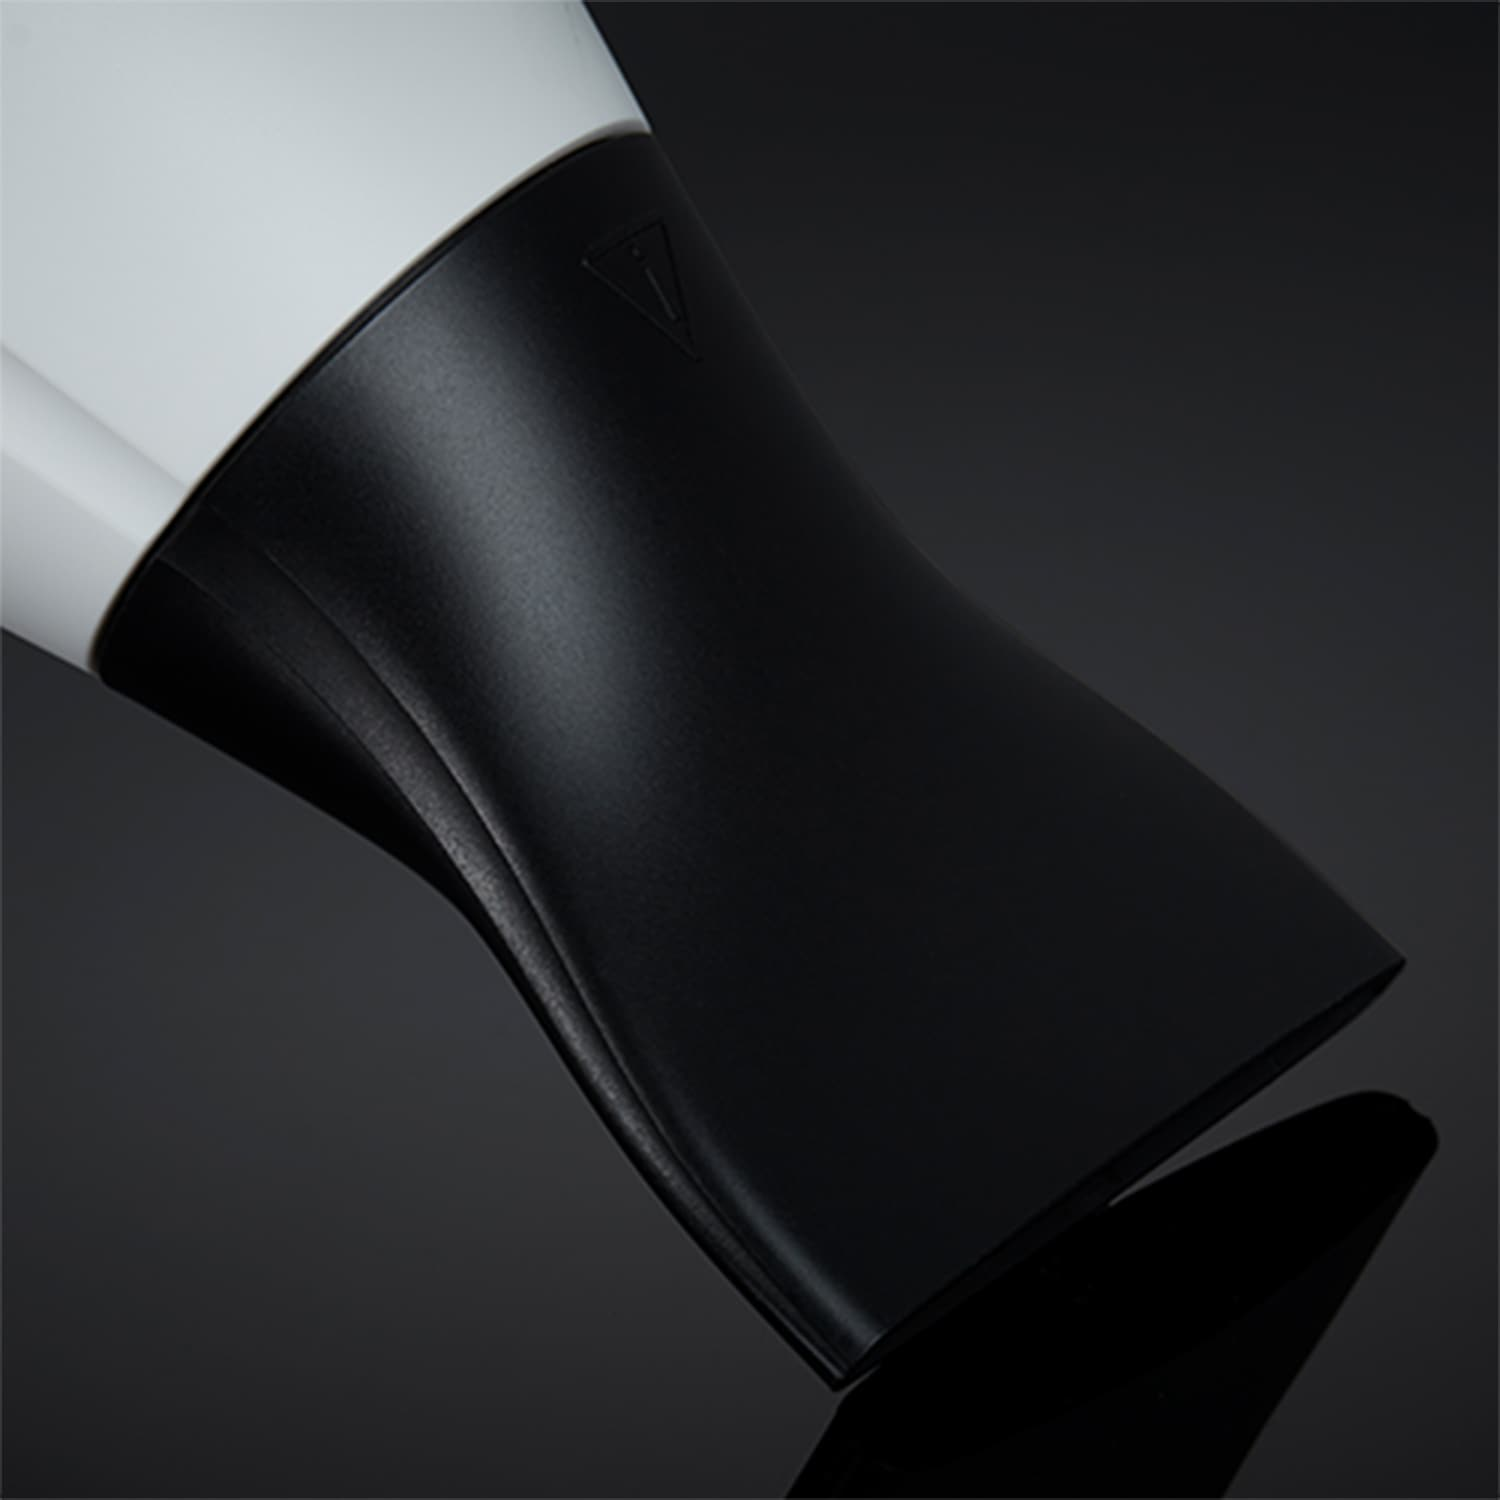 ghd helios hair dryer in white nozzle image